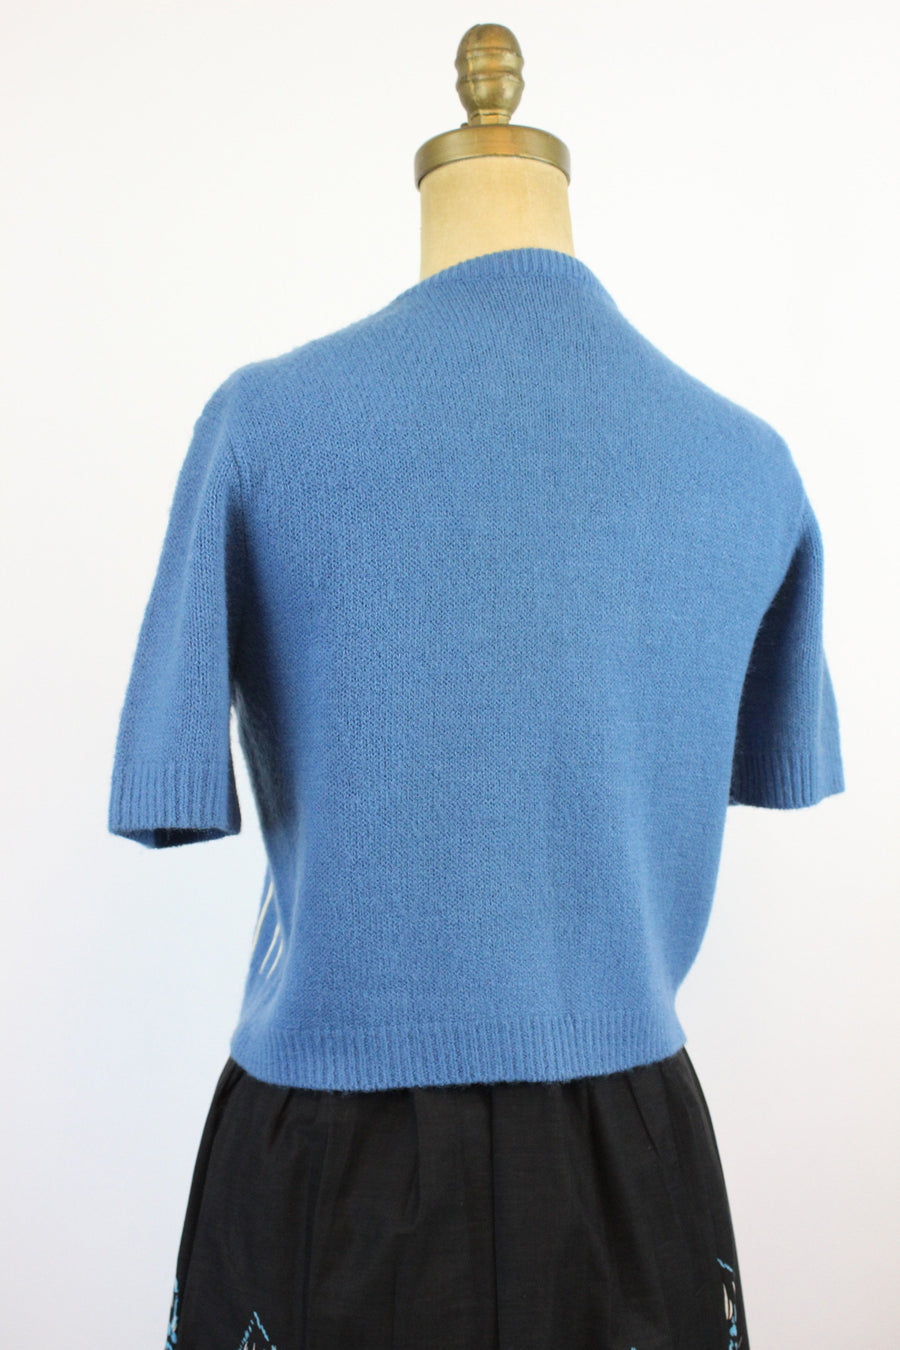 1950s cashmere OPEN FRONT cardigan small | new knitwear